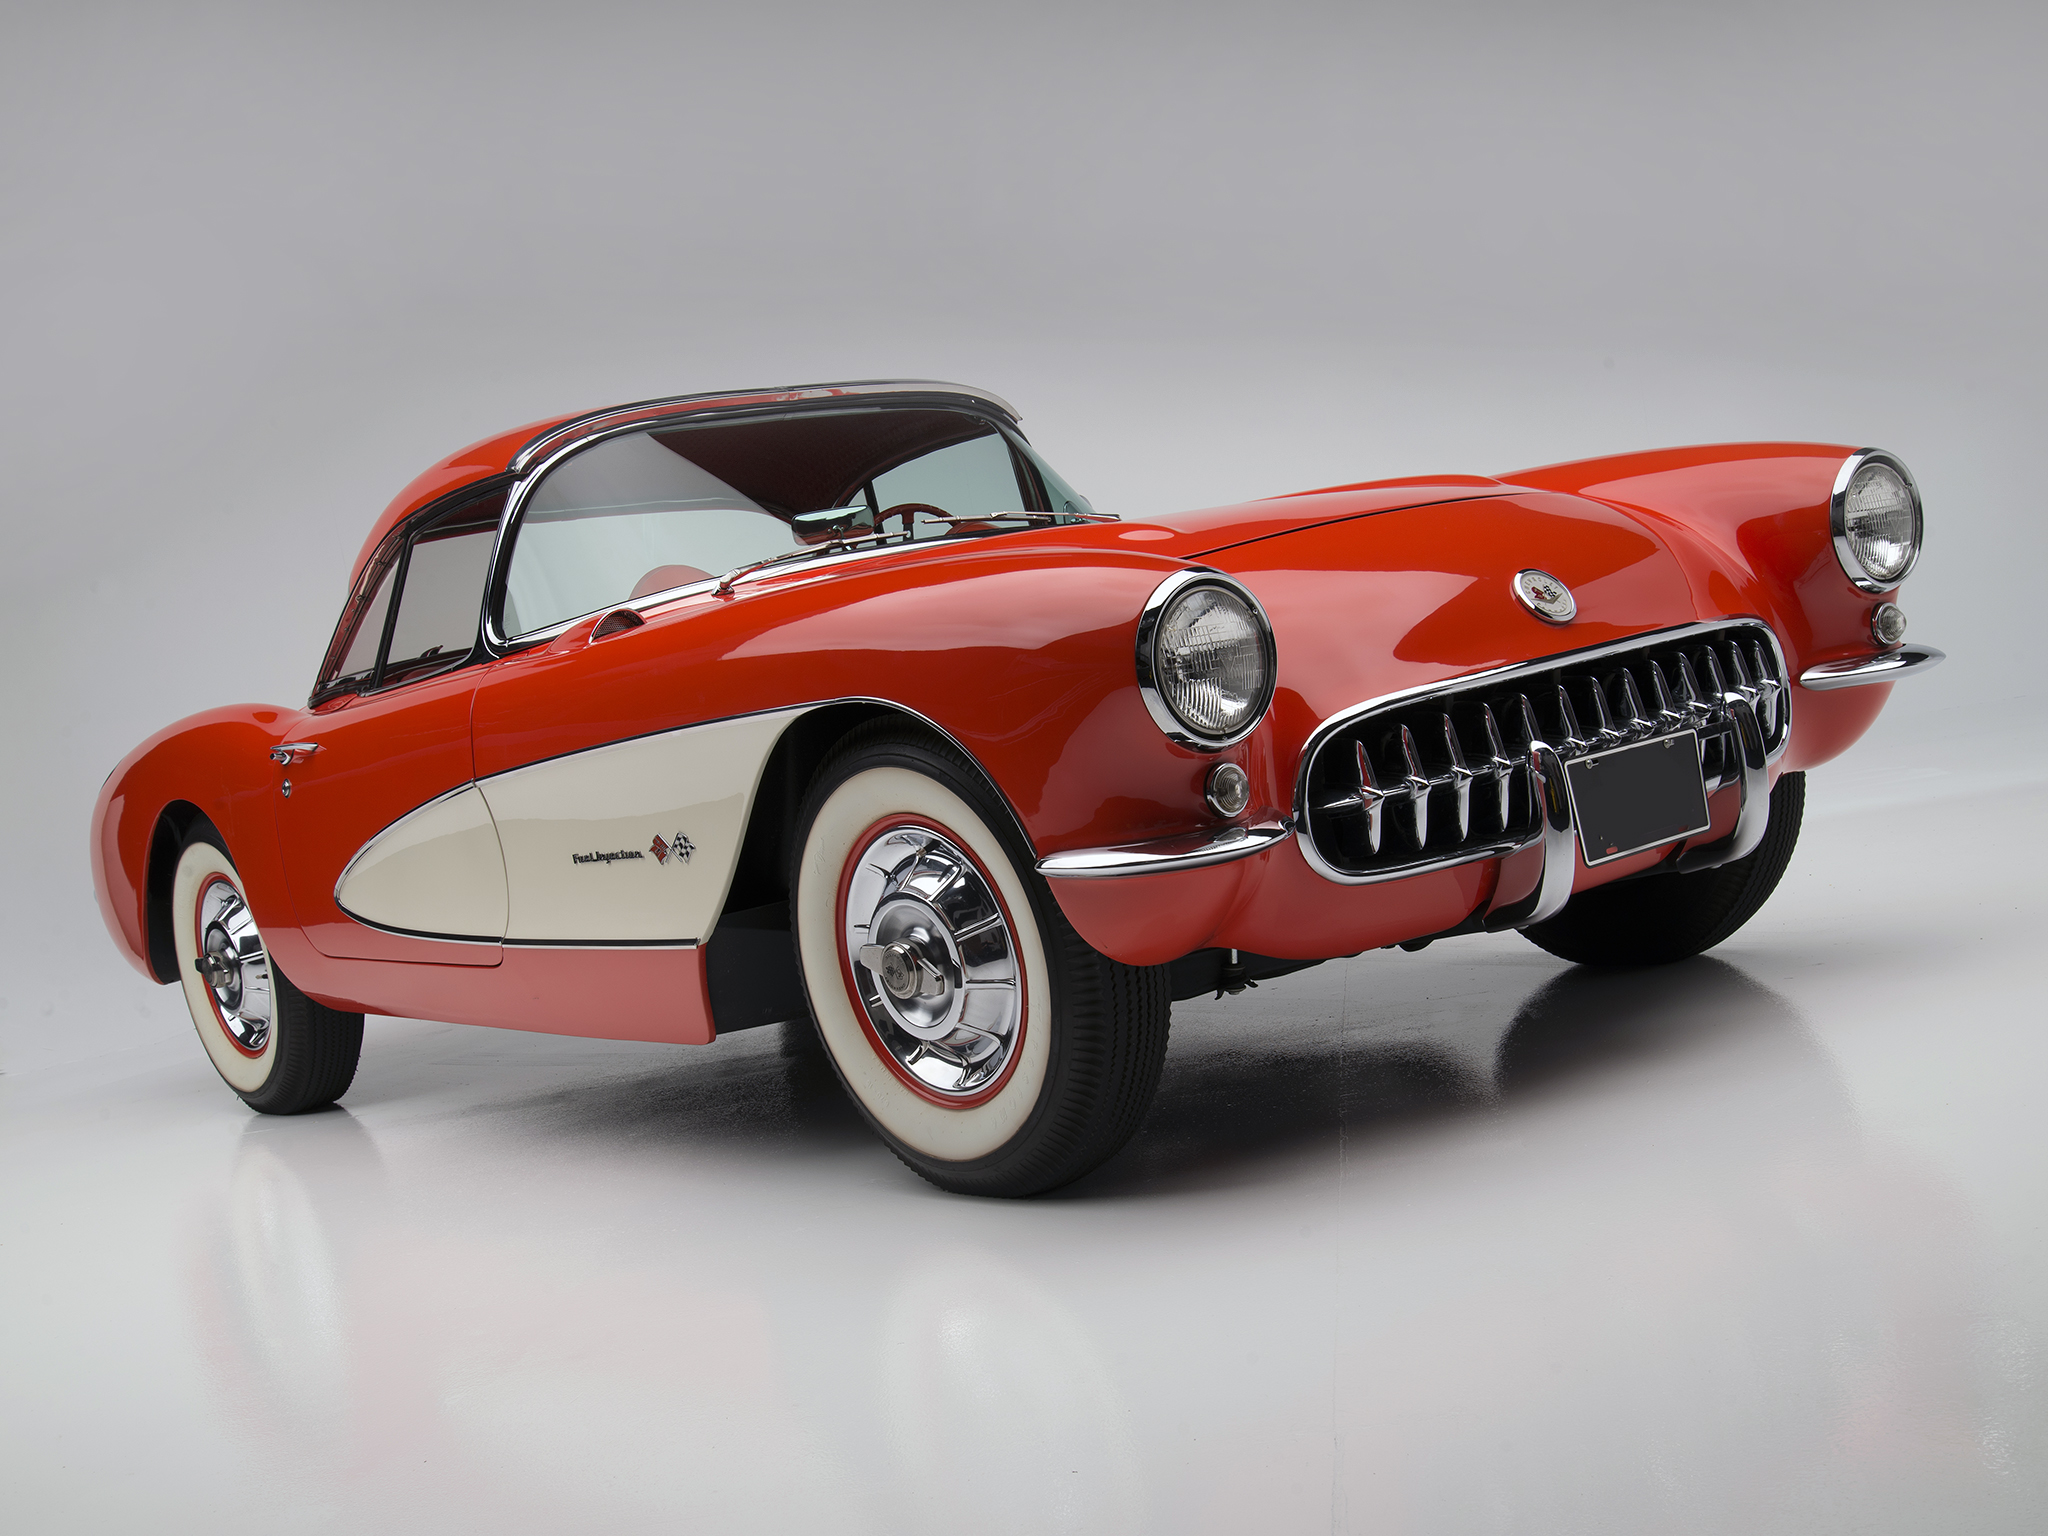 1957 Chevrolet Corvette C-1 Fuel Injection retro muscle supercar supercars  d